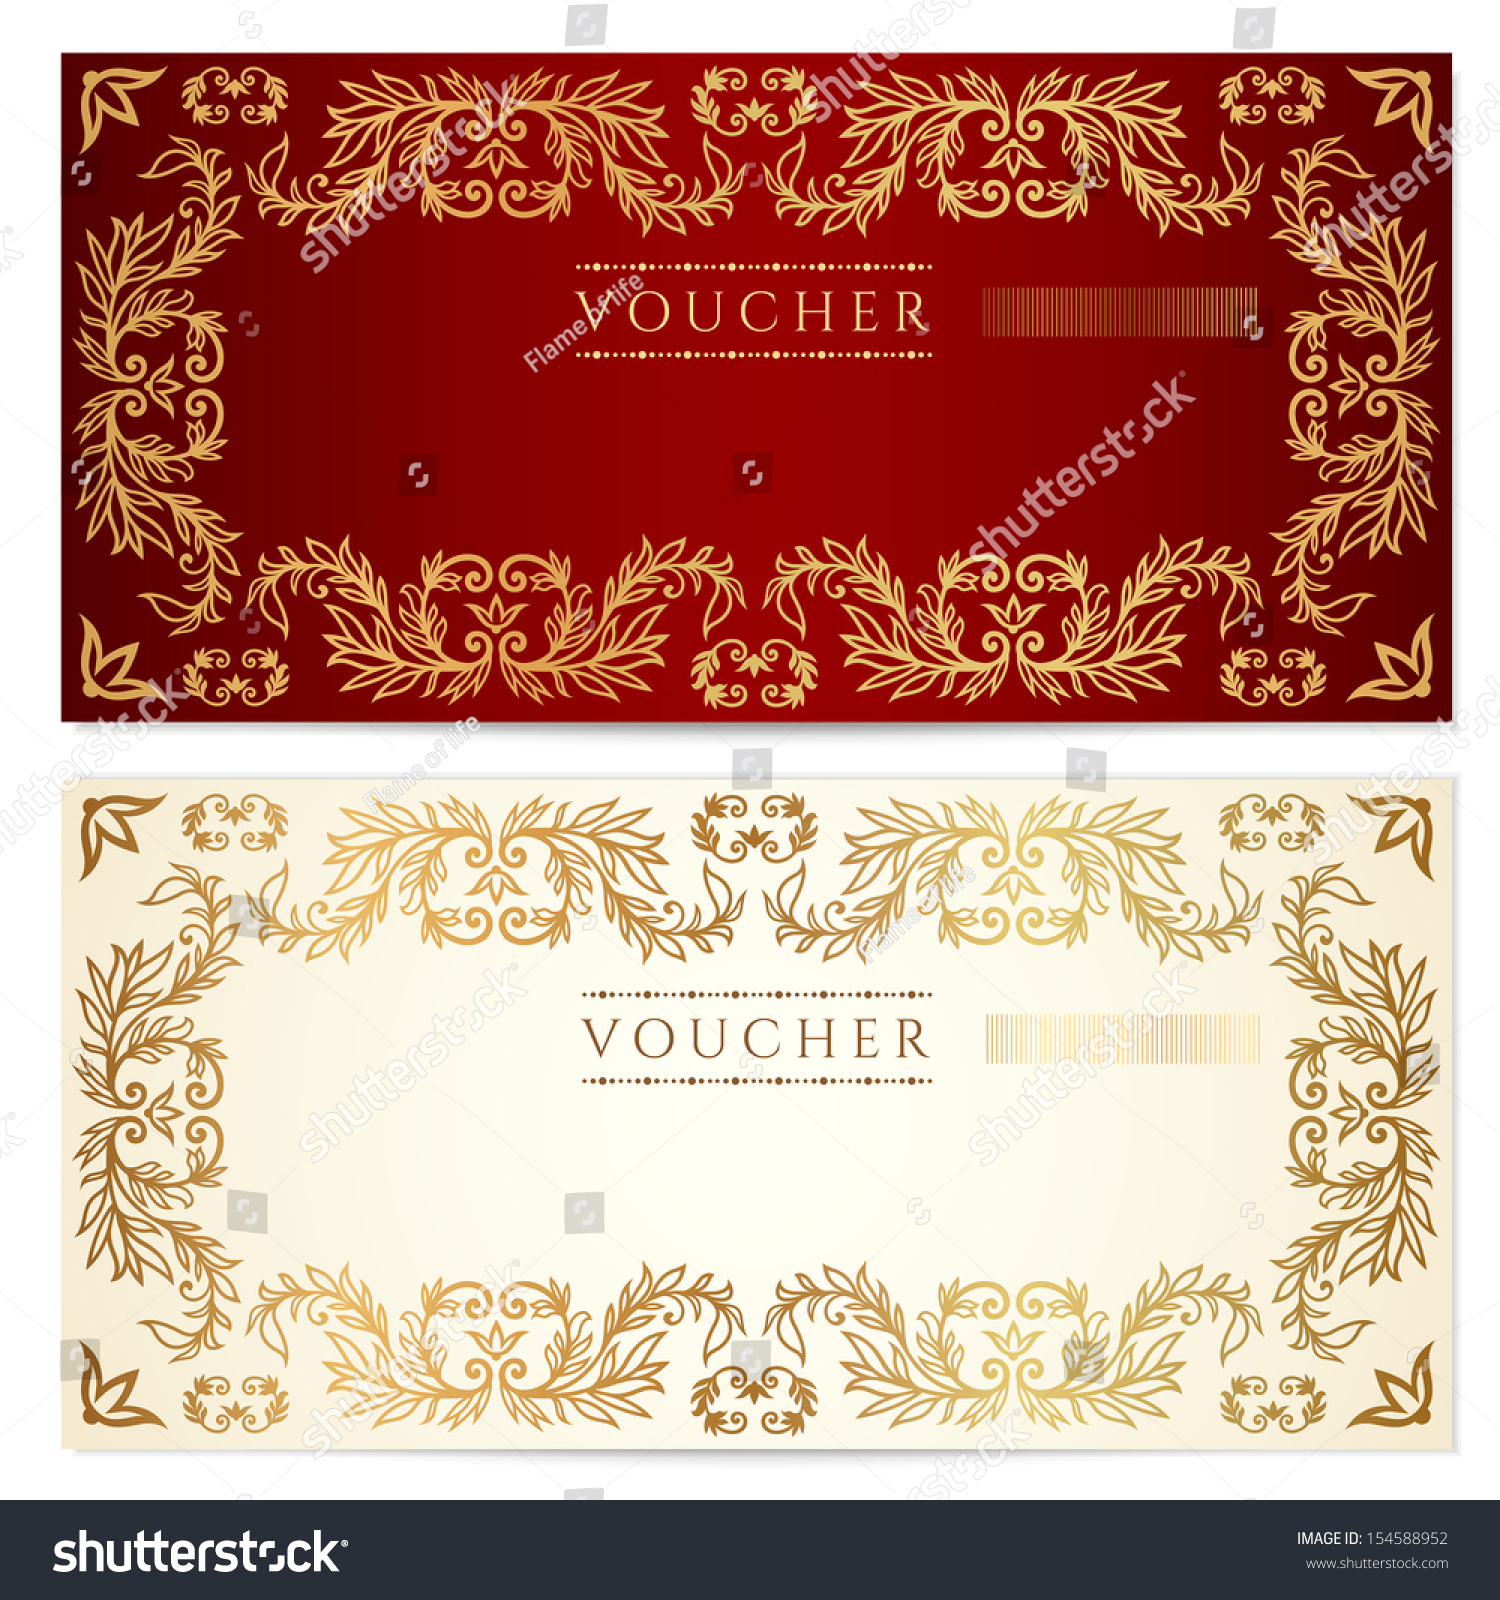 Voucher gift certificate coupon template scroll stock illustration voucher gift certificate coupon template with scroll floral pattern watermark yadclub Image collections